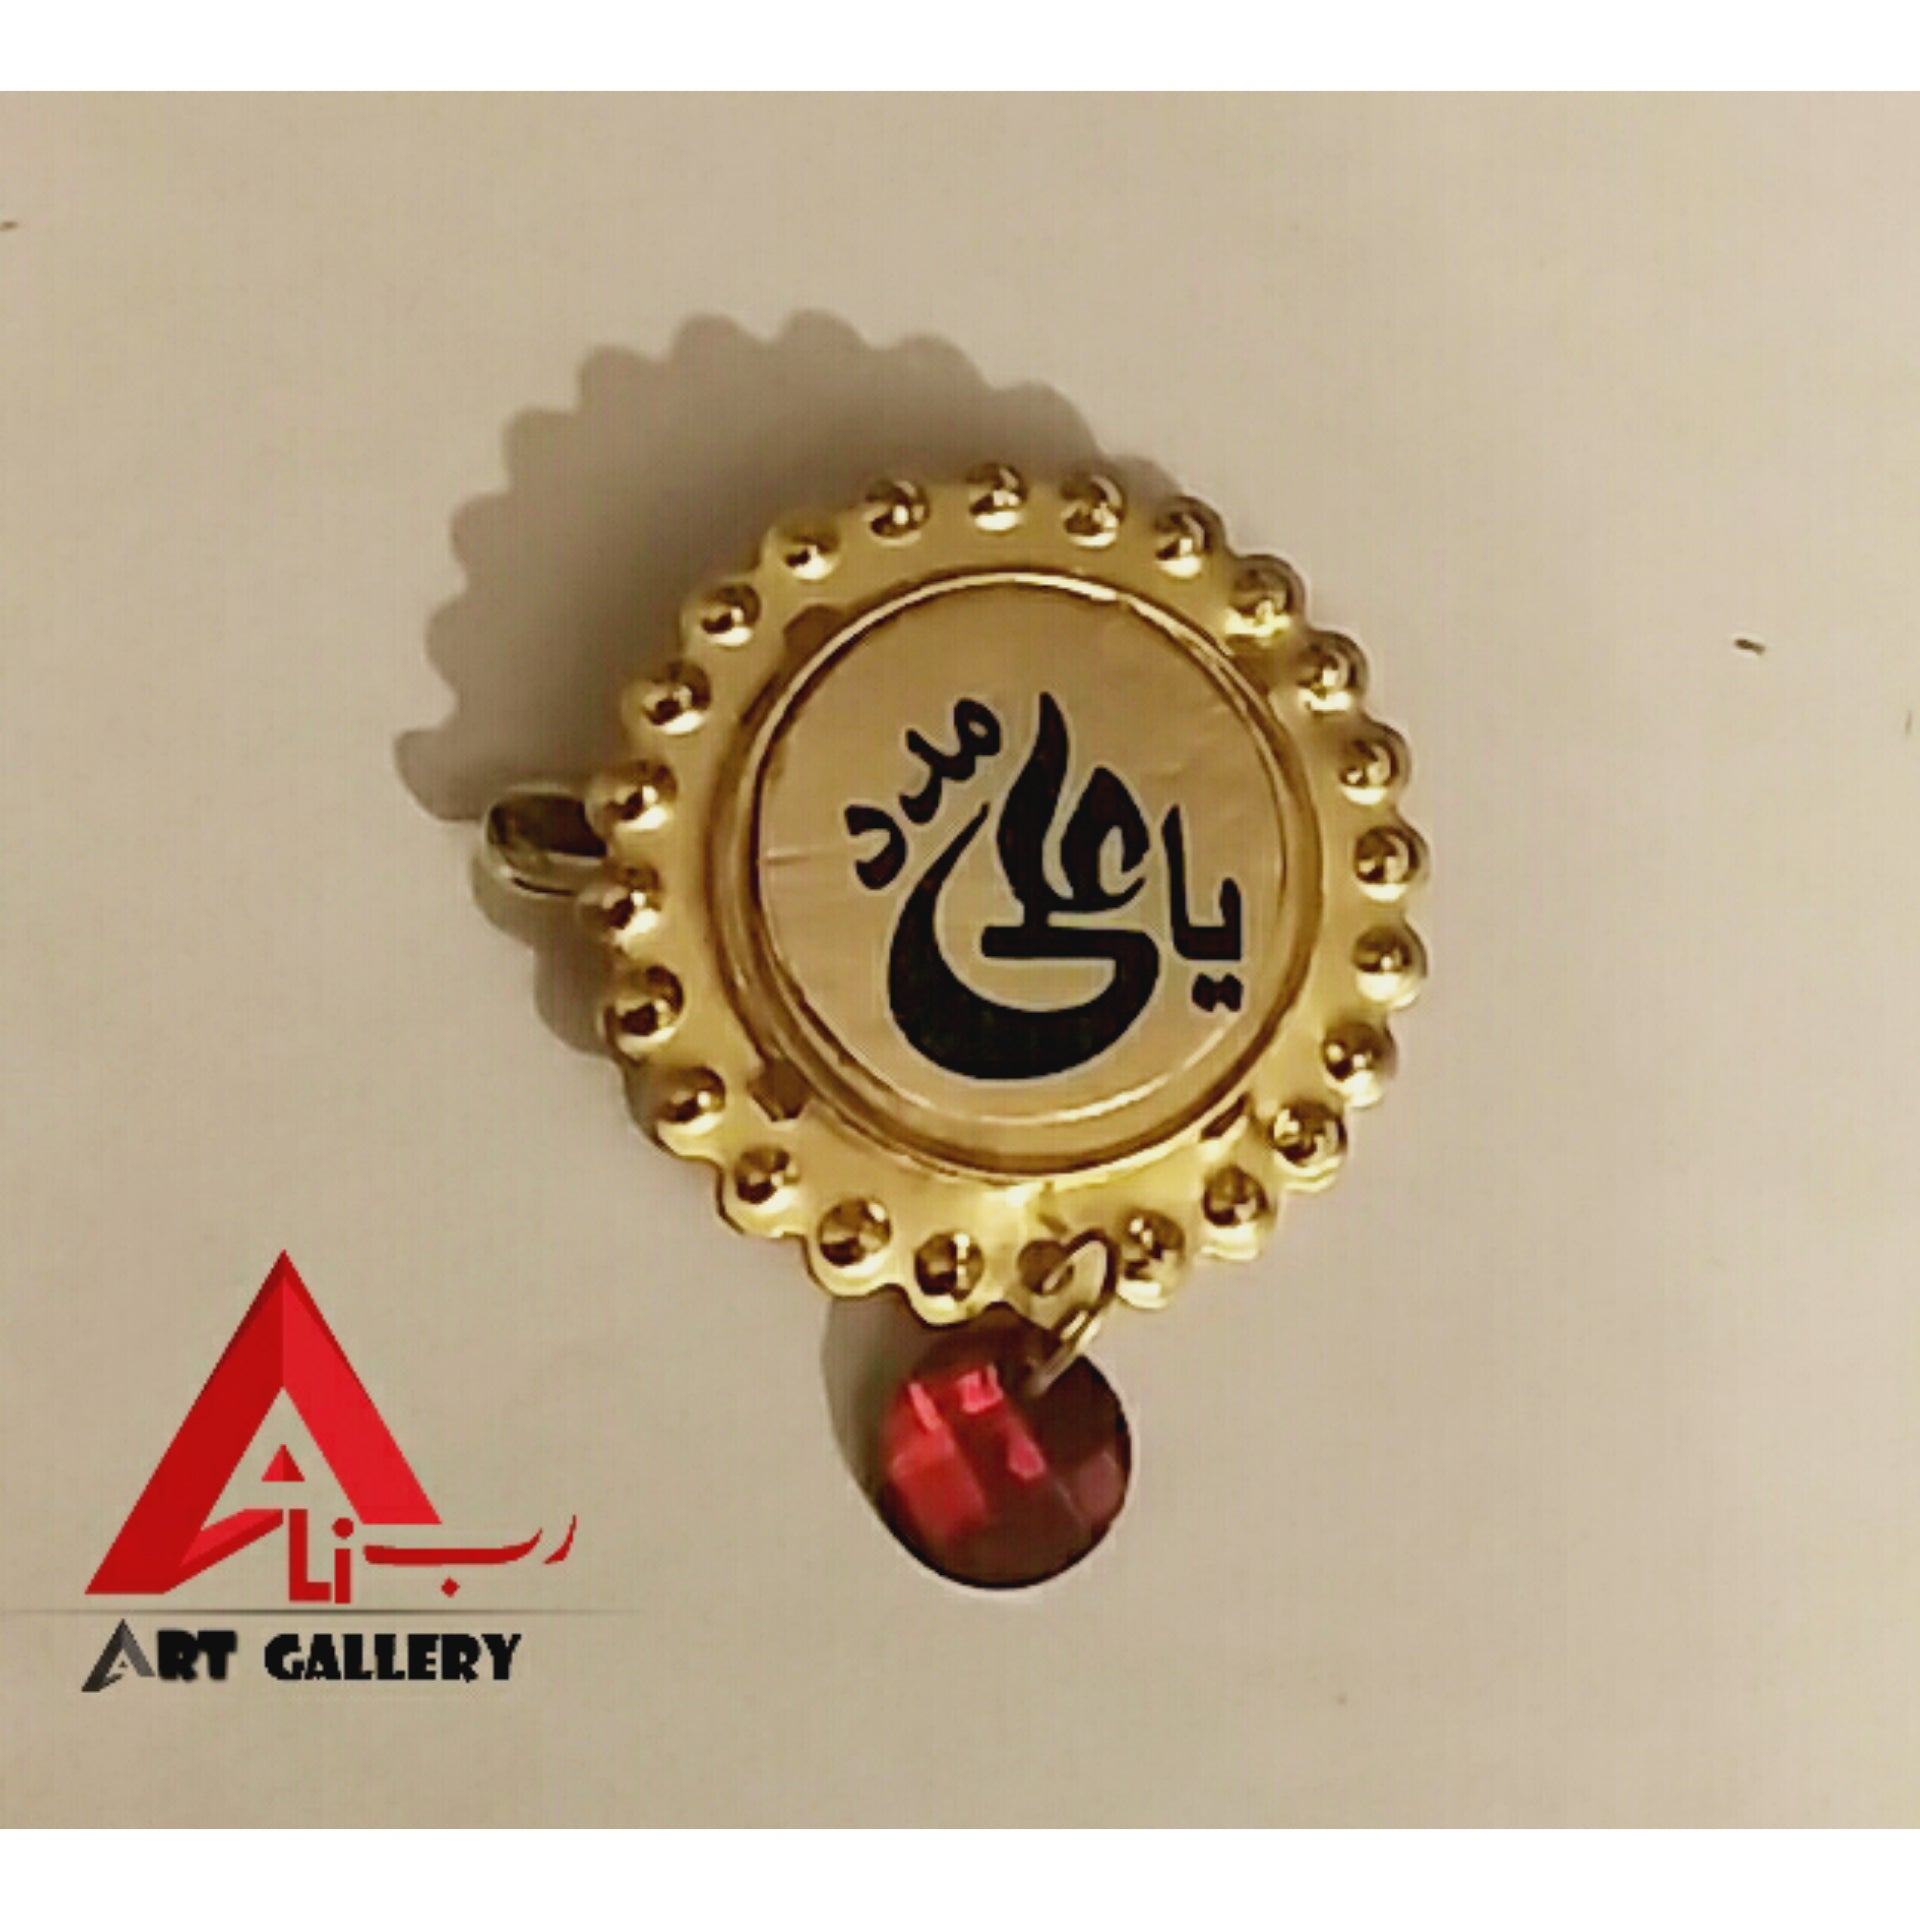 Ya Ali slwt madad Badges 3 pieces